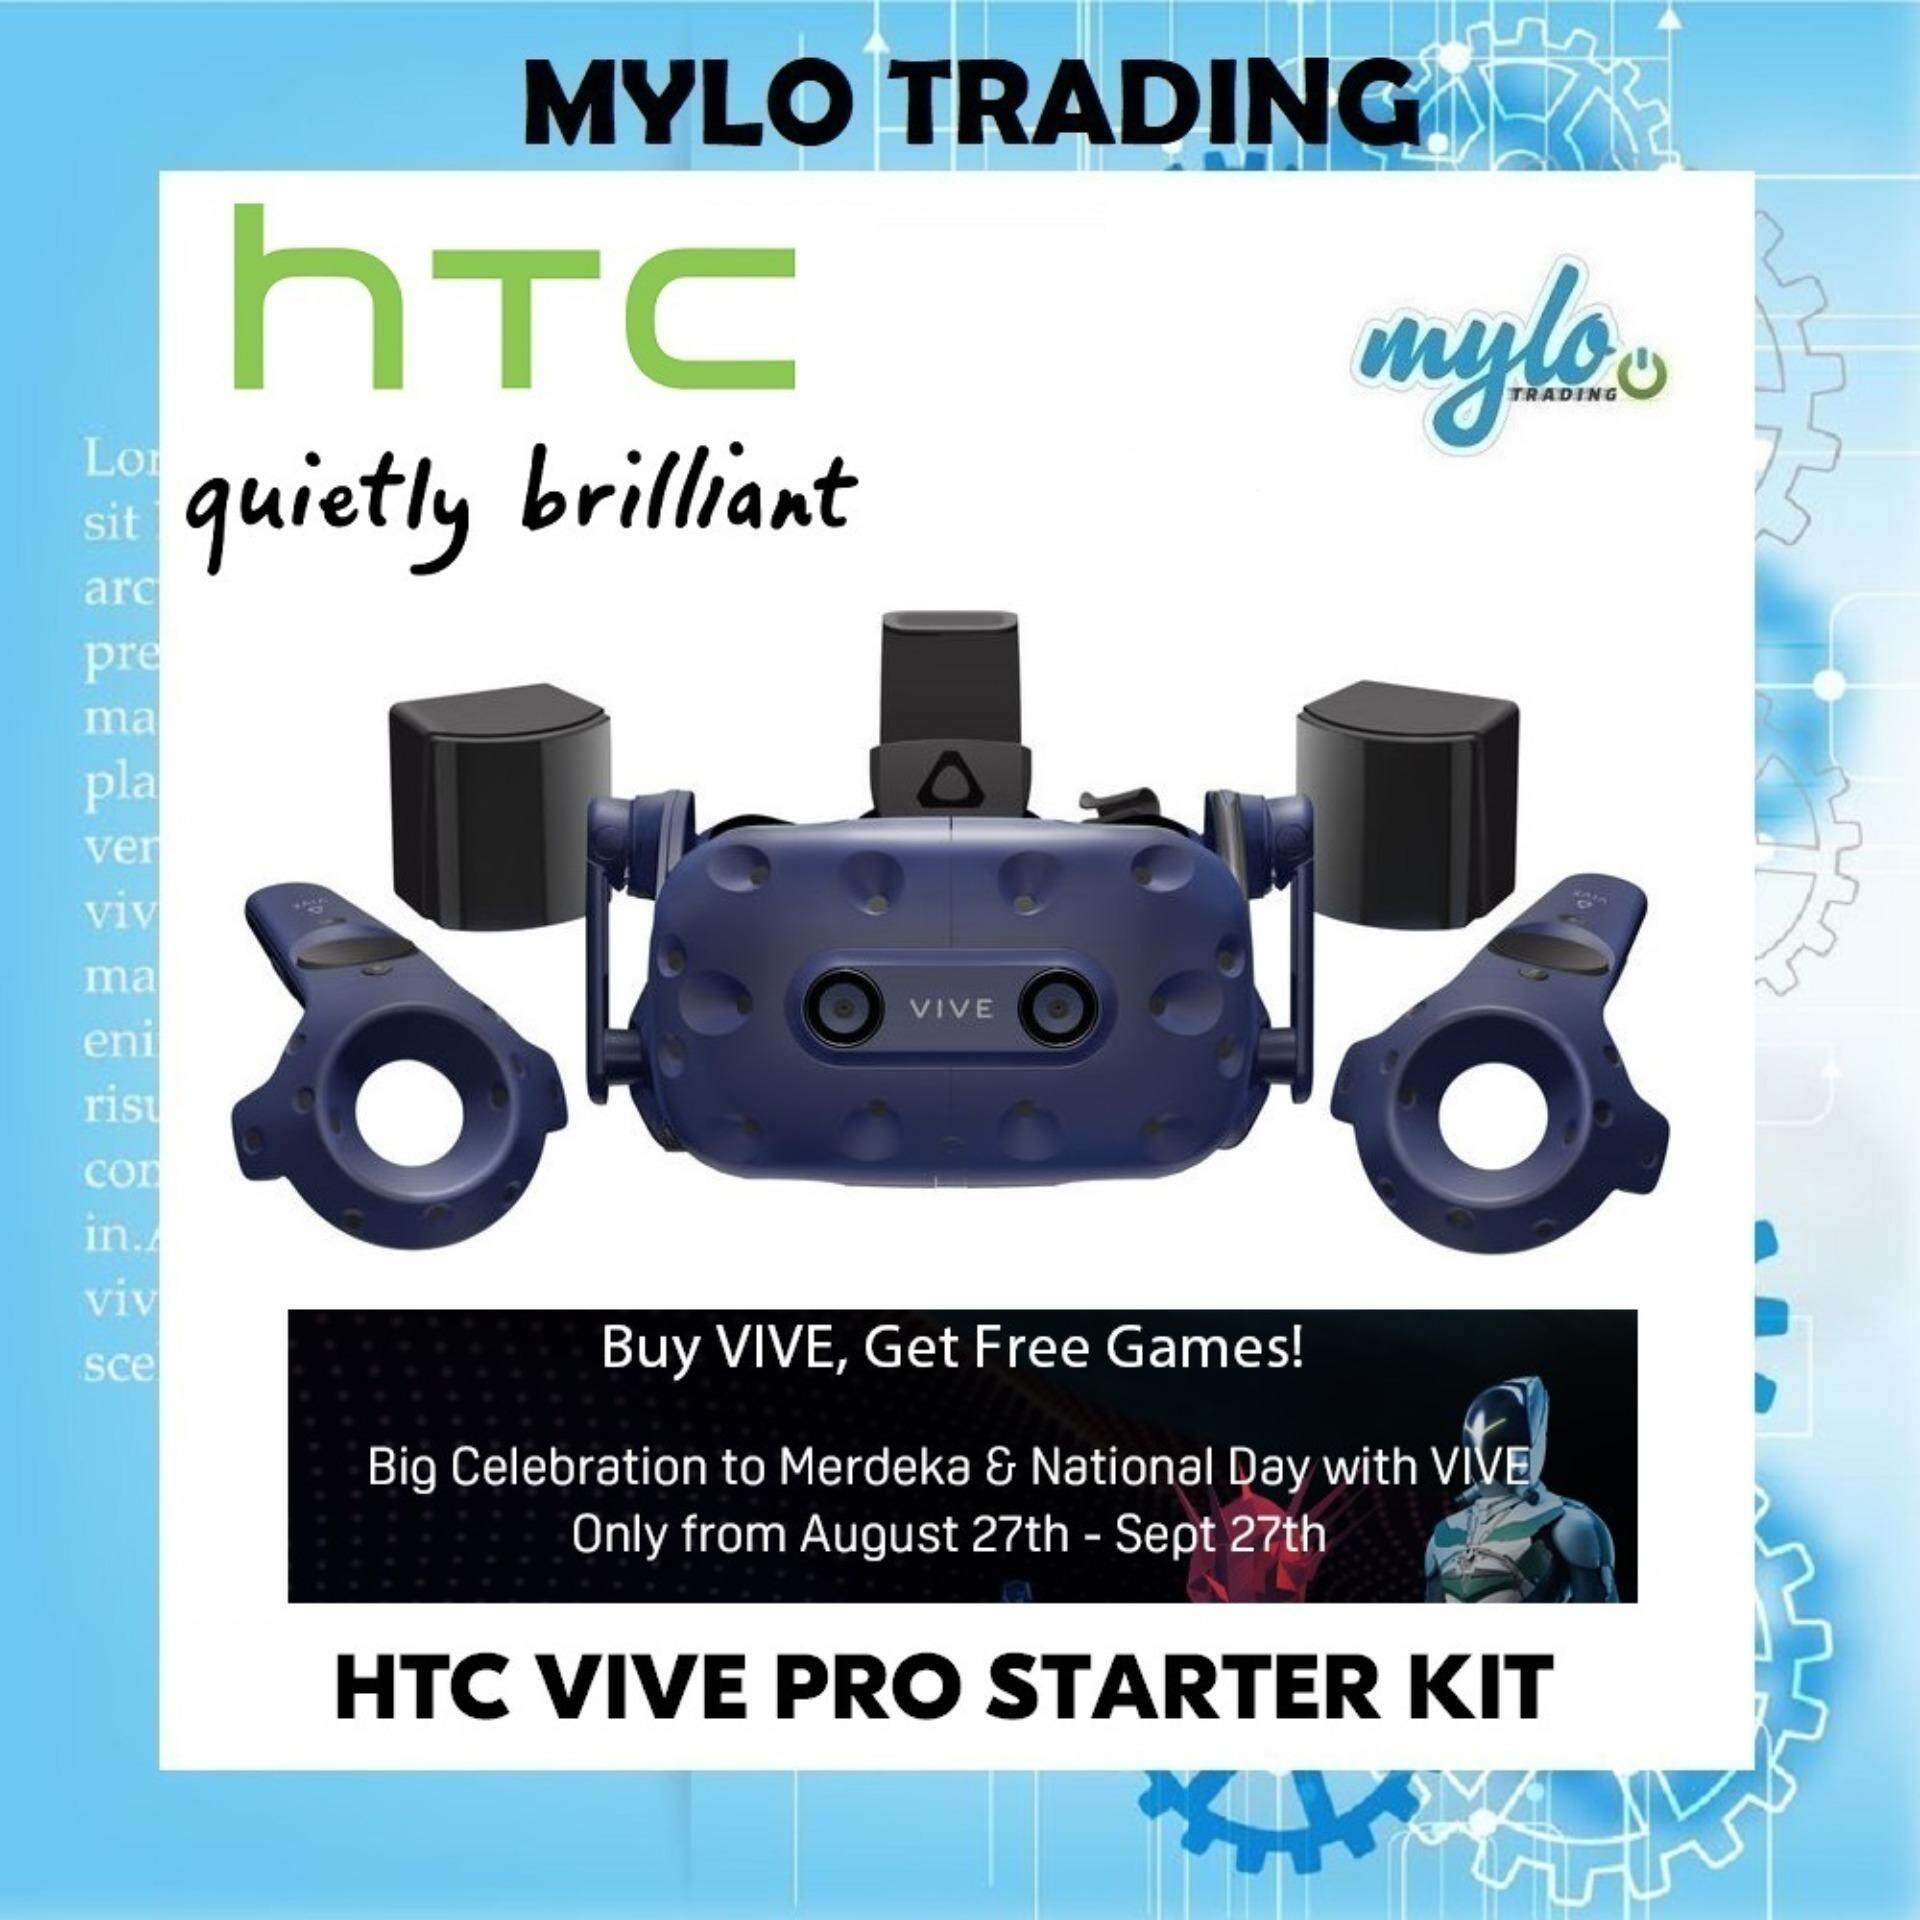 HTC Vive Pro Kit VR HEADSETS